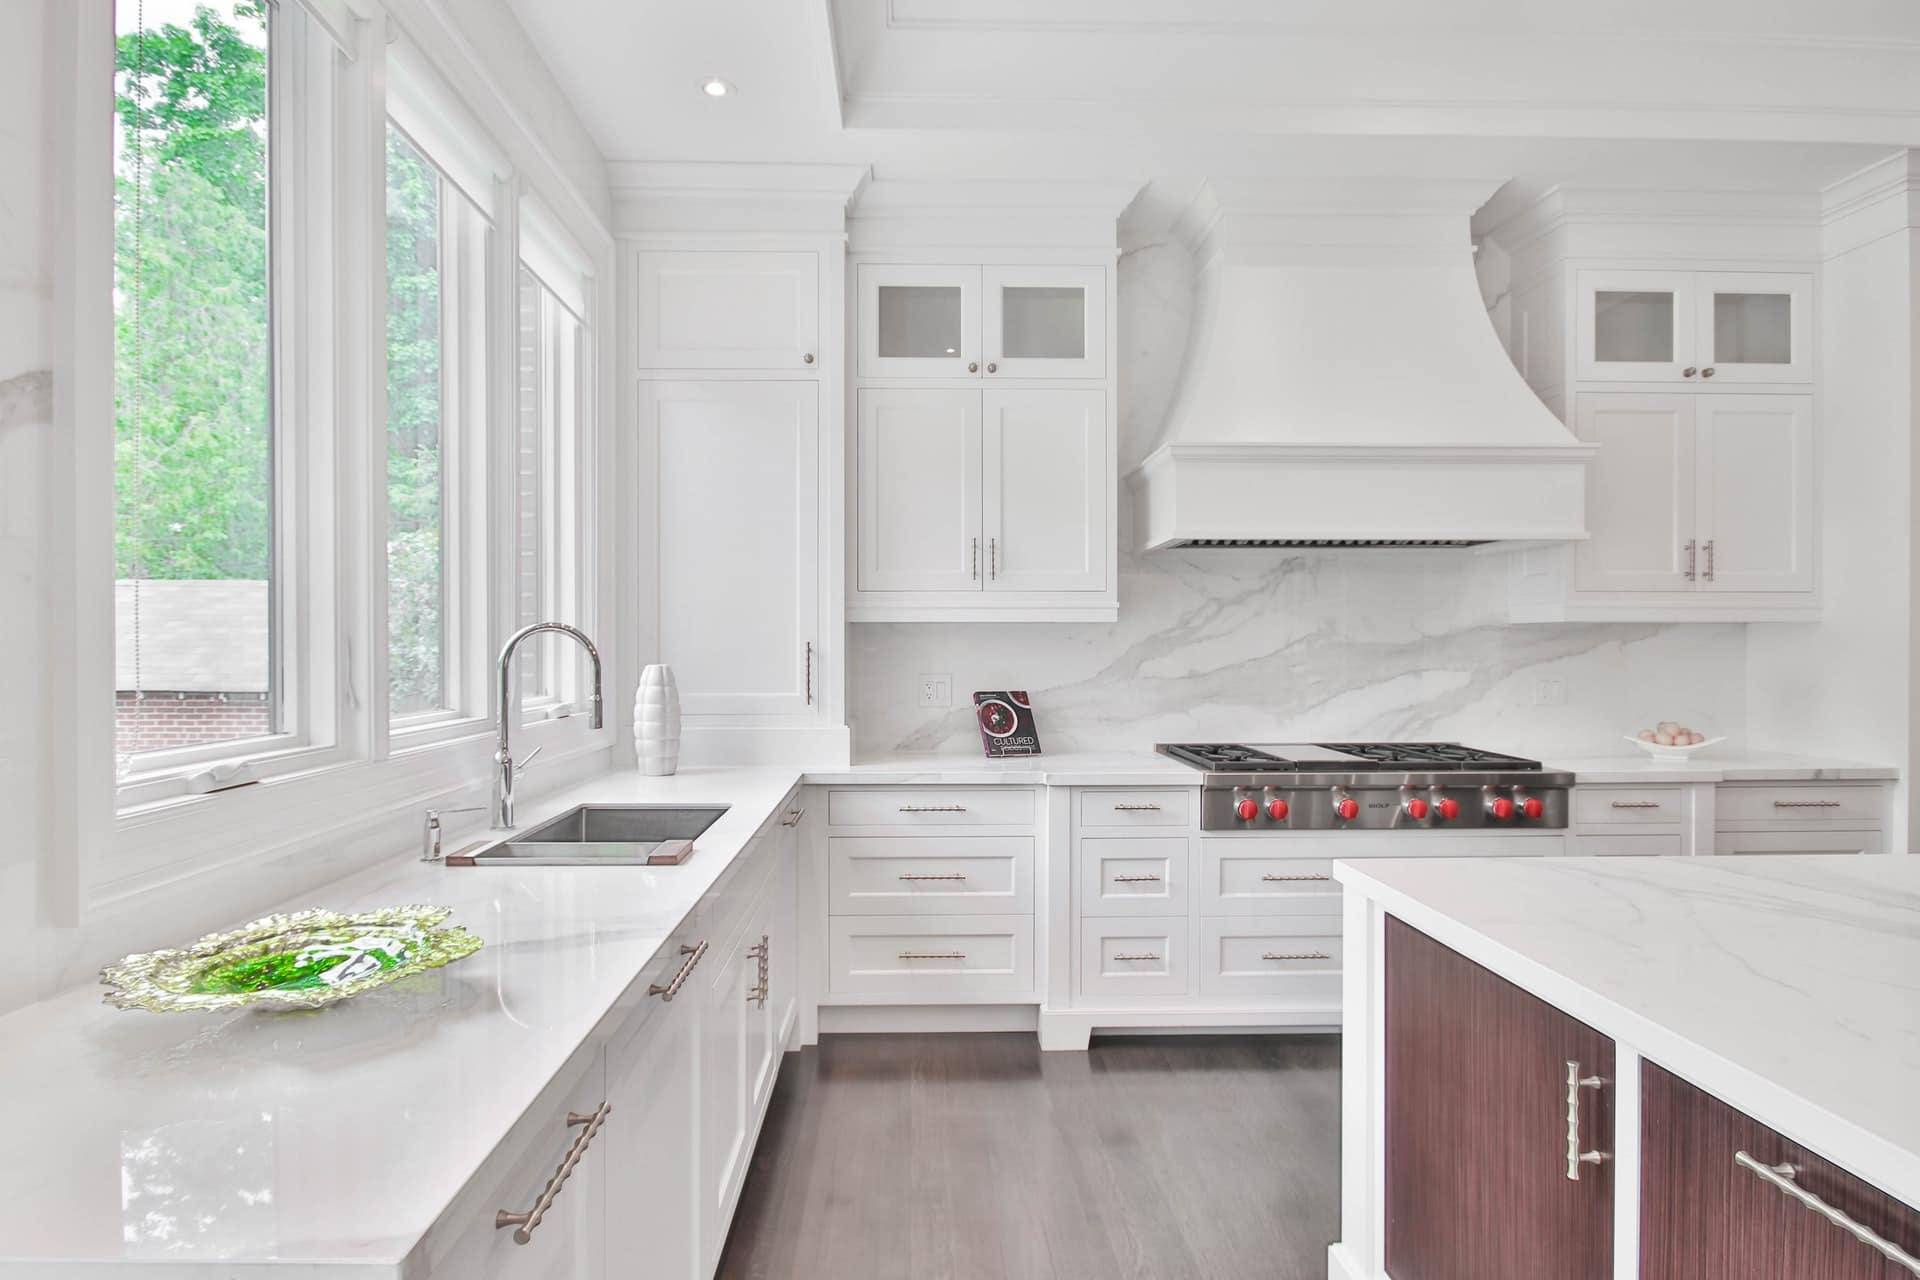 Marble Countertop Costs And Installation Requirements Explained